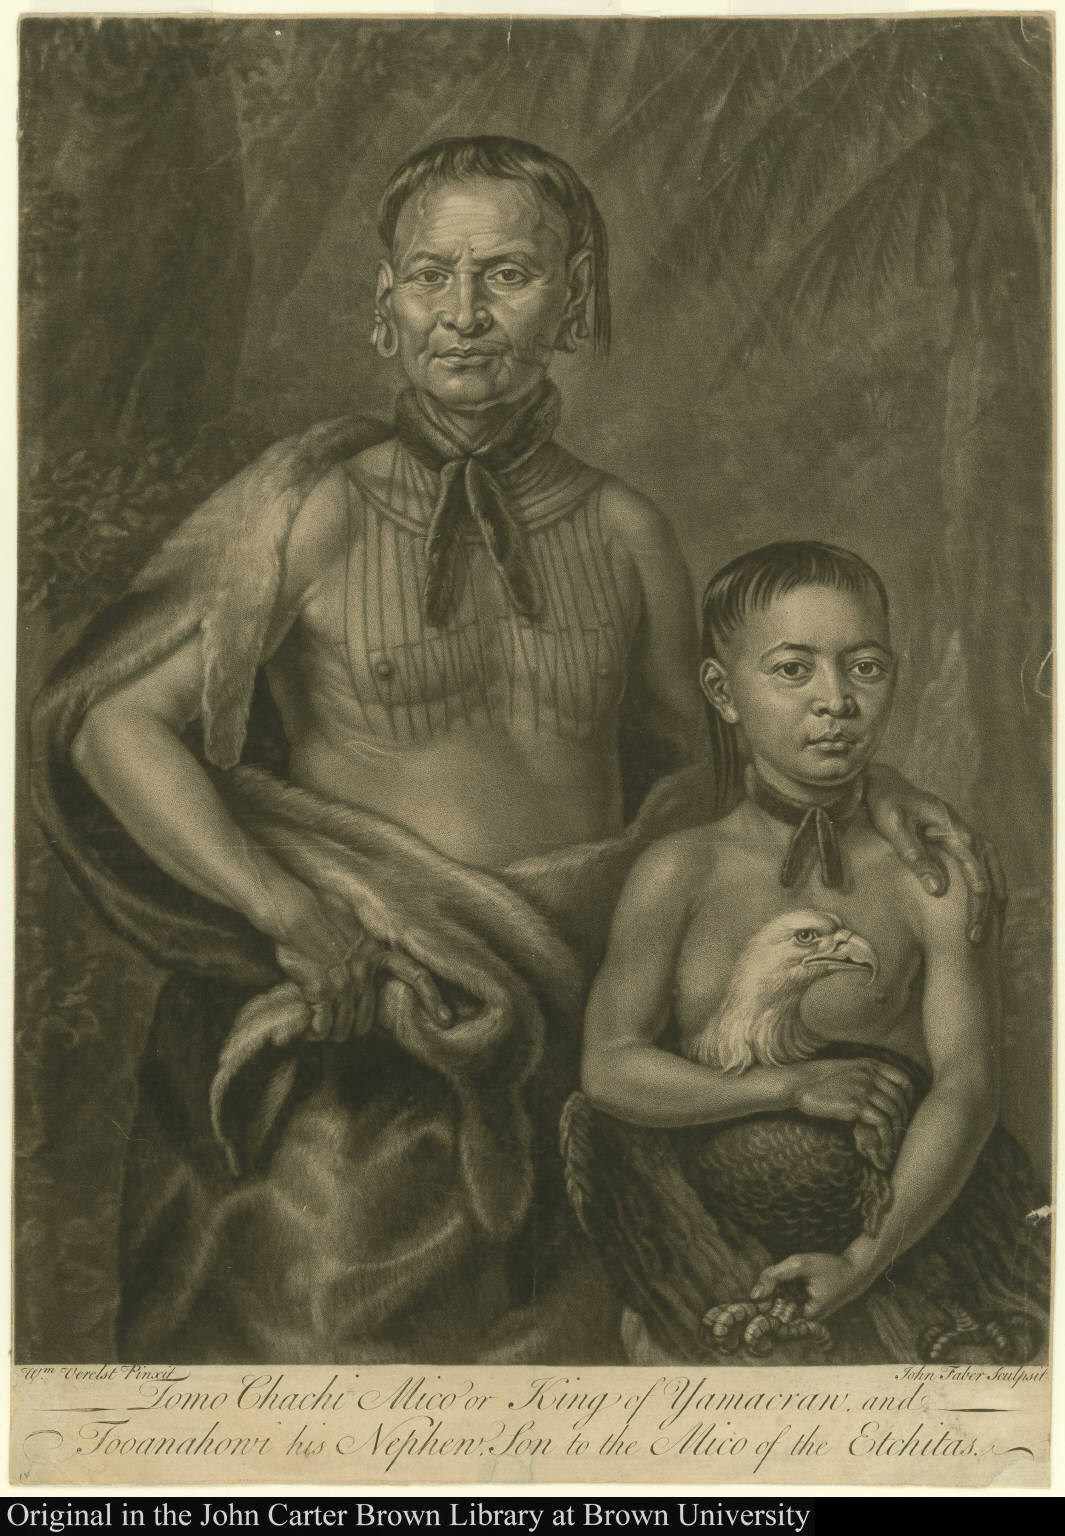 Tomo Chachi Mico or King of Yamacraw, and Tooanahowi his Nephew, son to the Mico of the Etchitas.